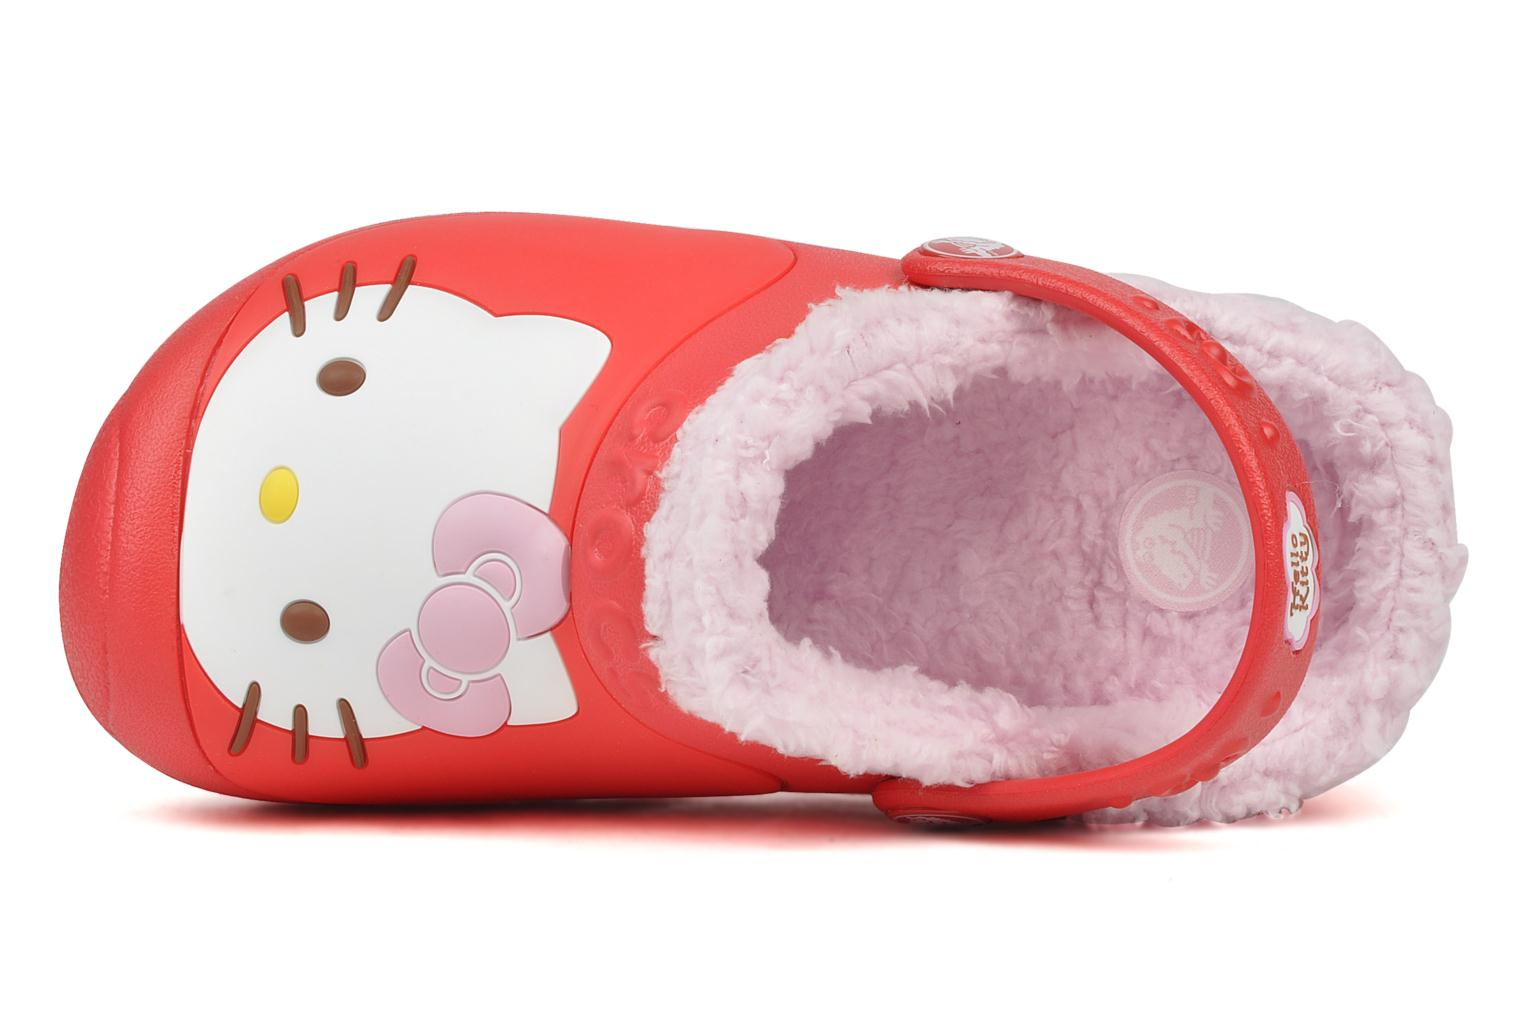 Sandales et nu-pieds Crocs Hello kitty lined custom clog Rouge vue gauche